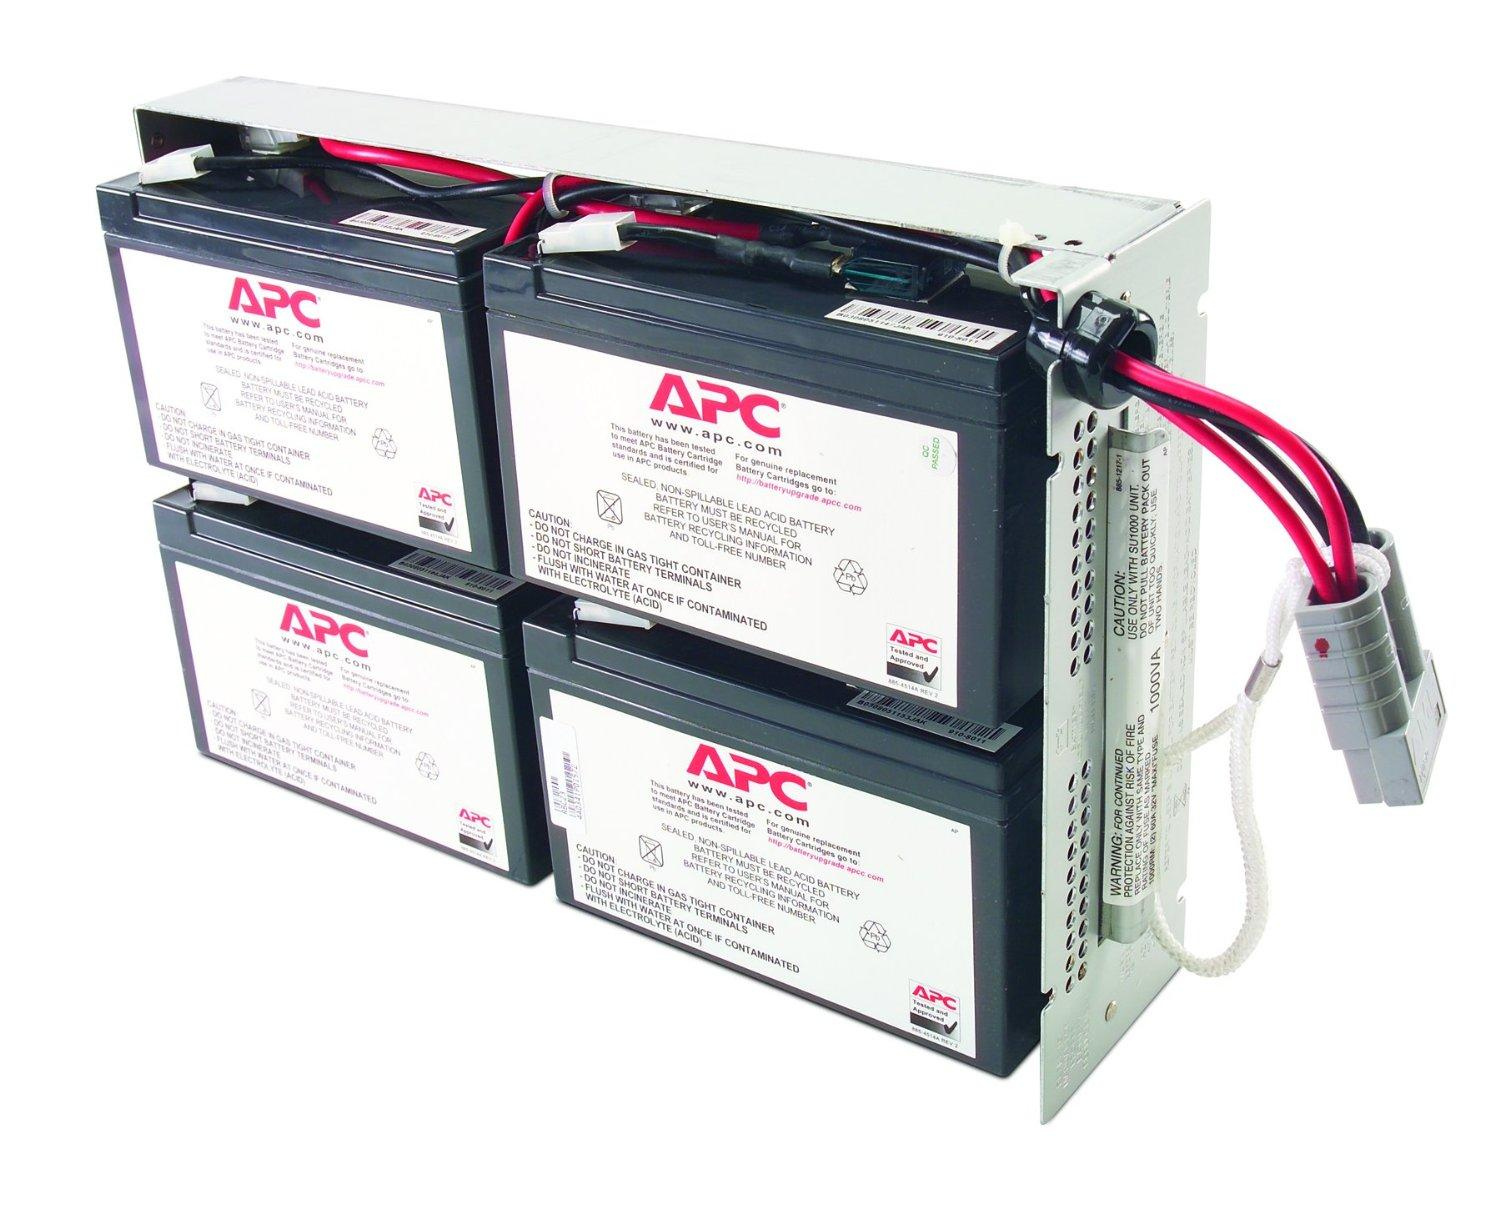 Apc Rbc43 Wiring Diagram Free For You Cartridge Amazon Com Apcrbc140 Ups Replacement Battery Rh Amp Heating Cooling Thermostat